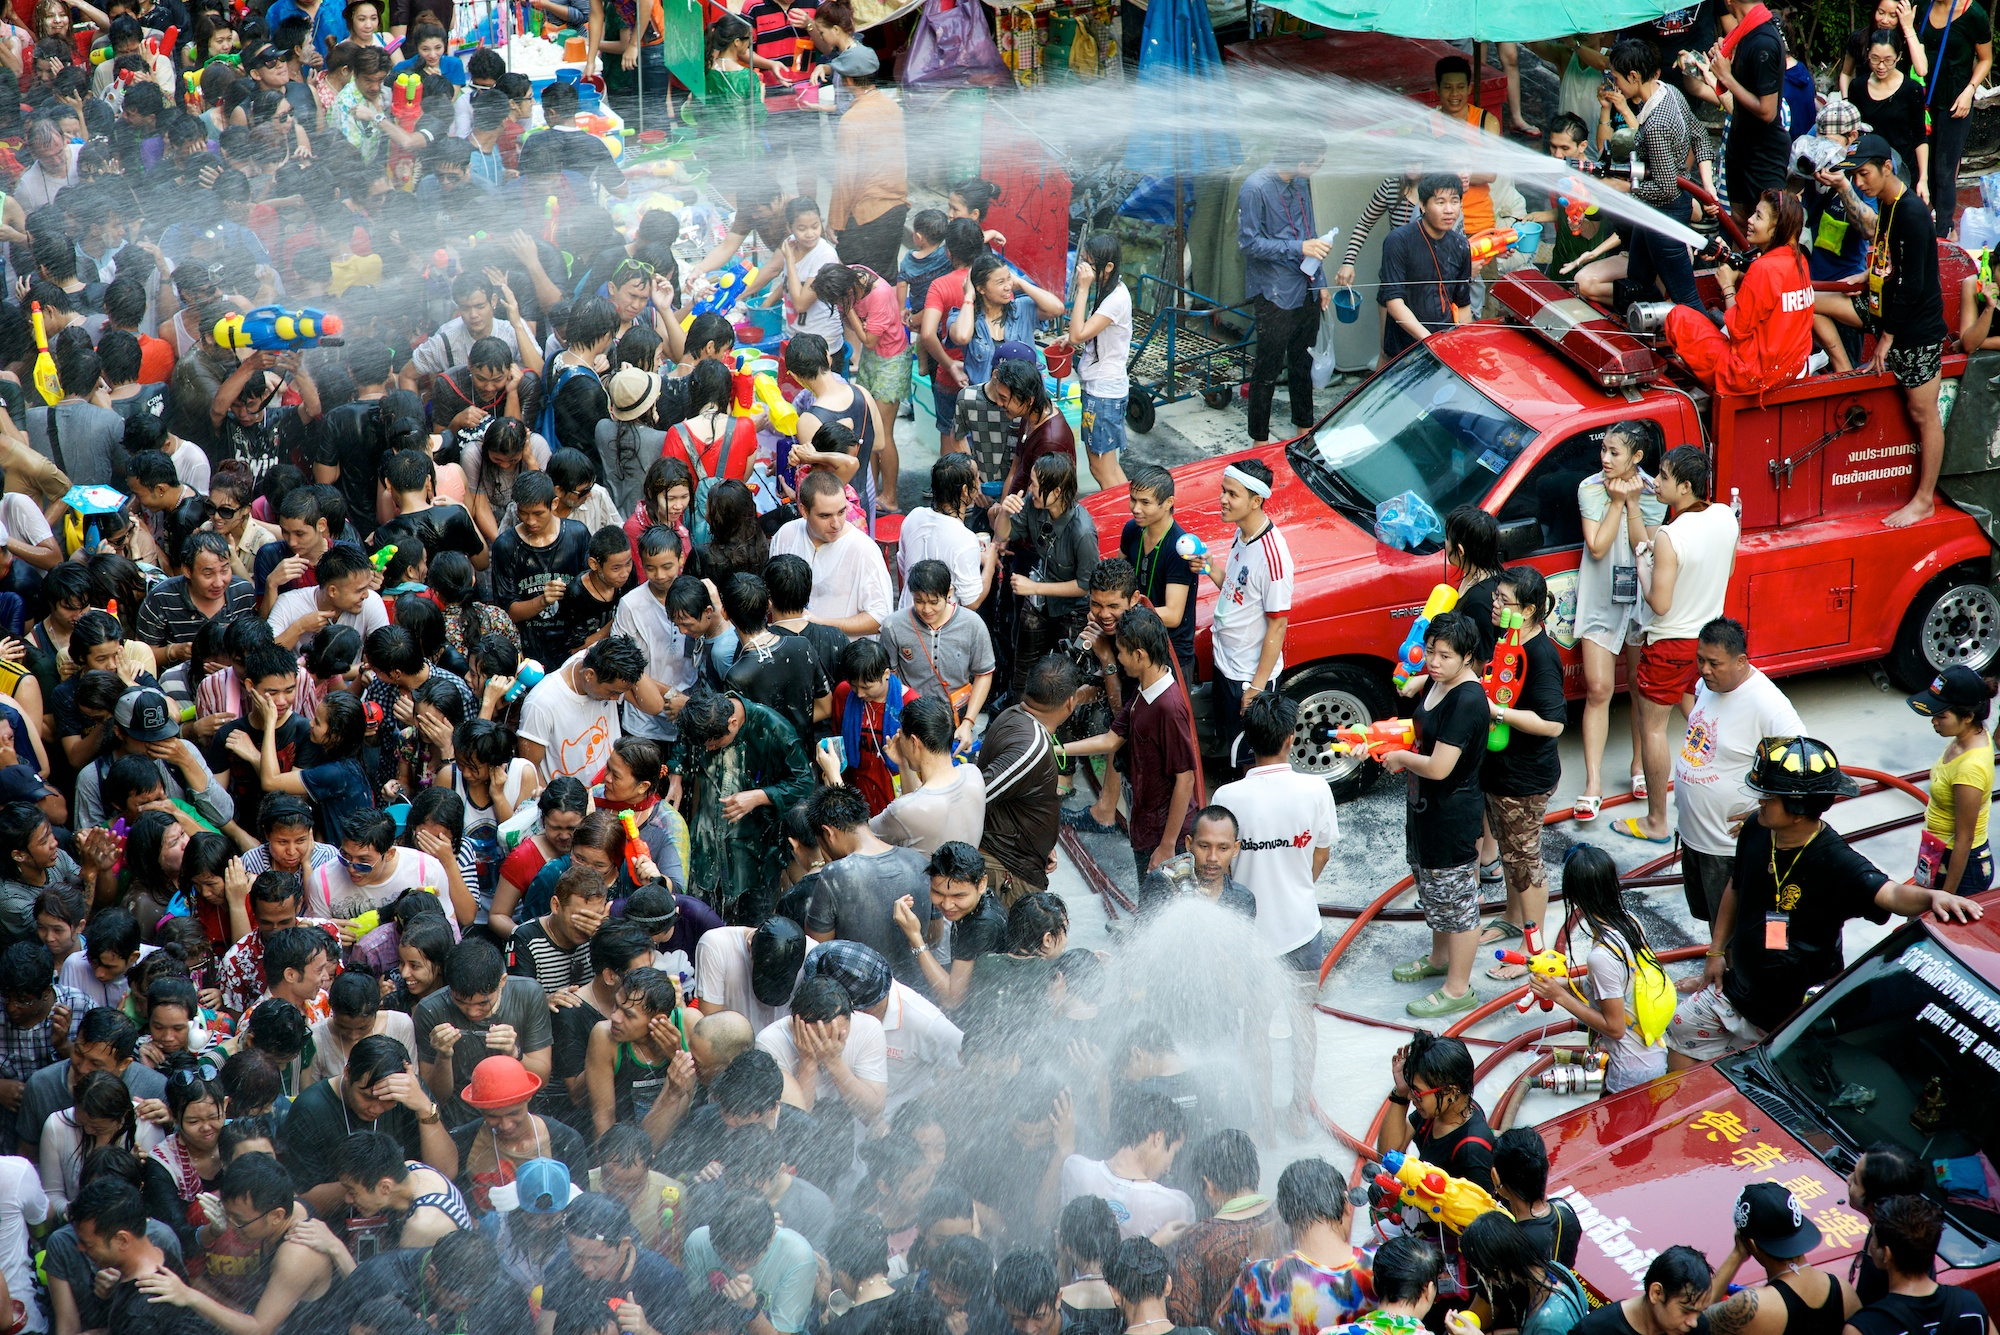 Songkran Festival (Thai New Year). Photo taken on April 14, 2013.